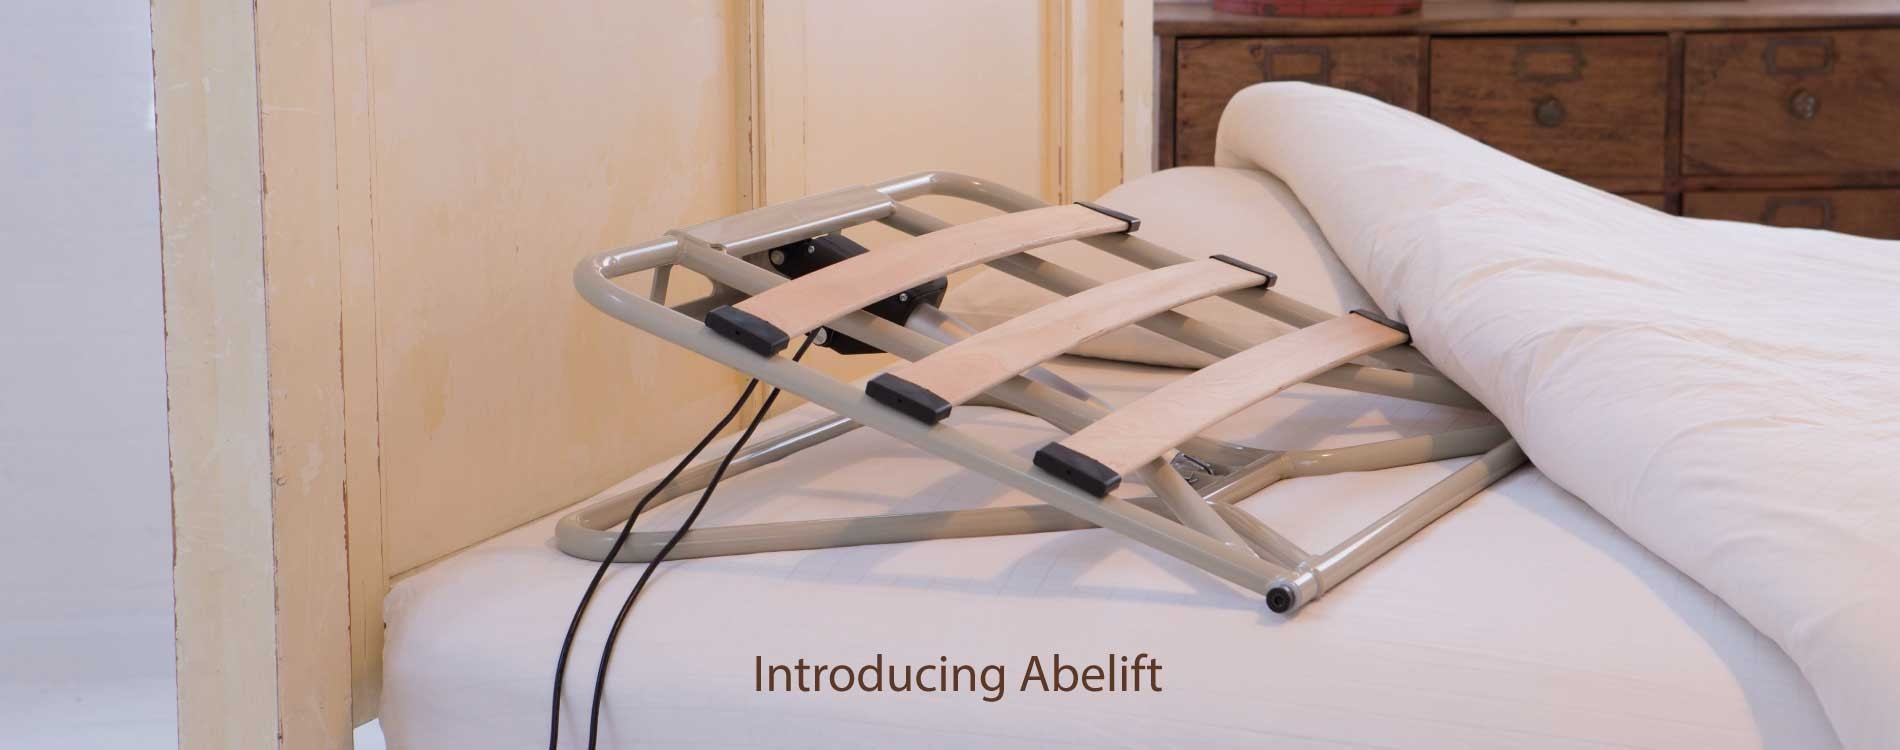 Introducing Abelift